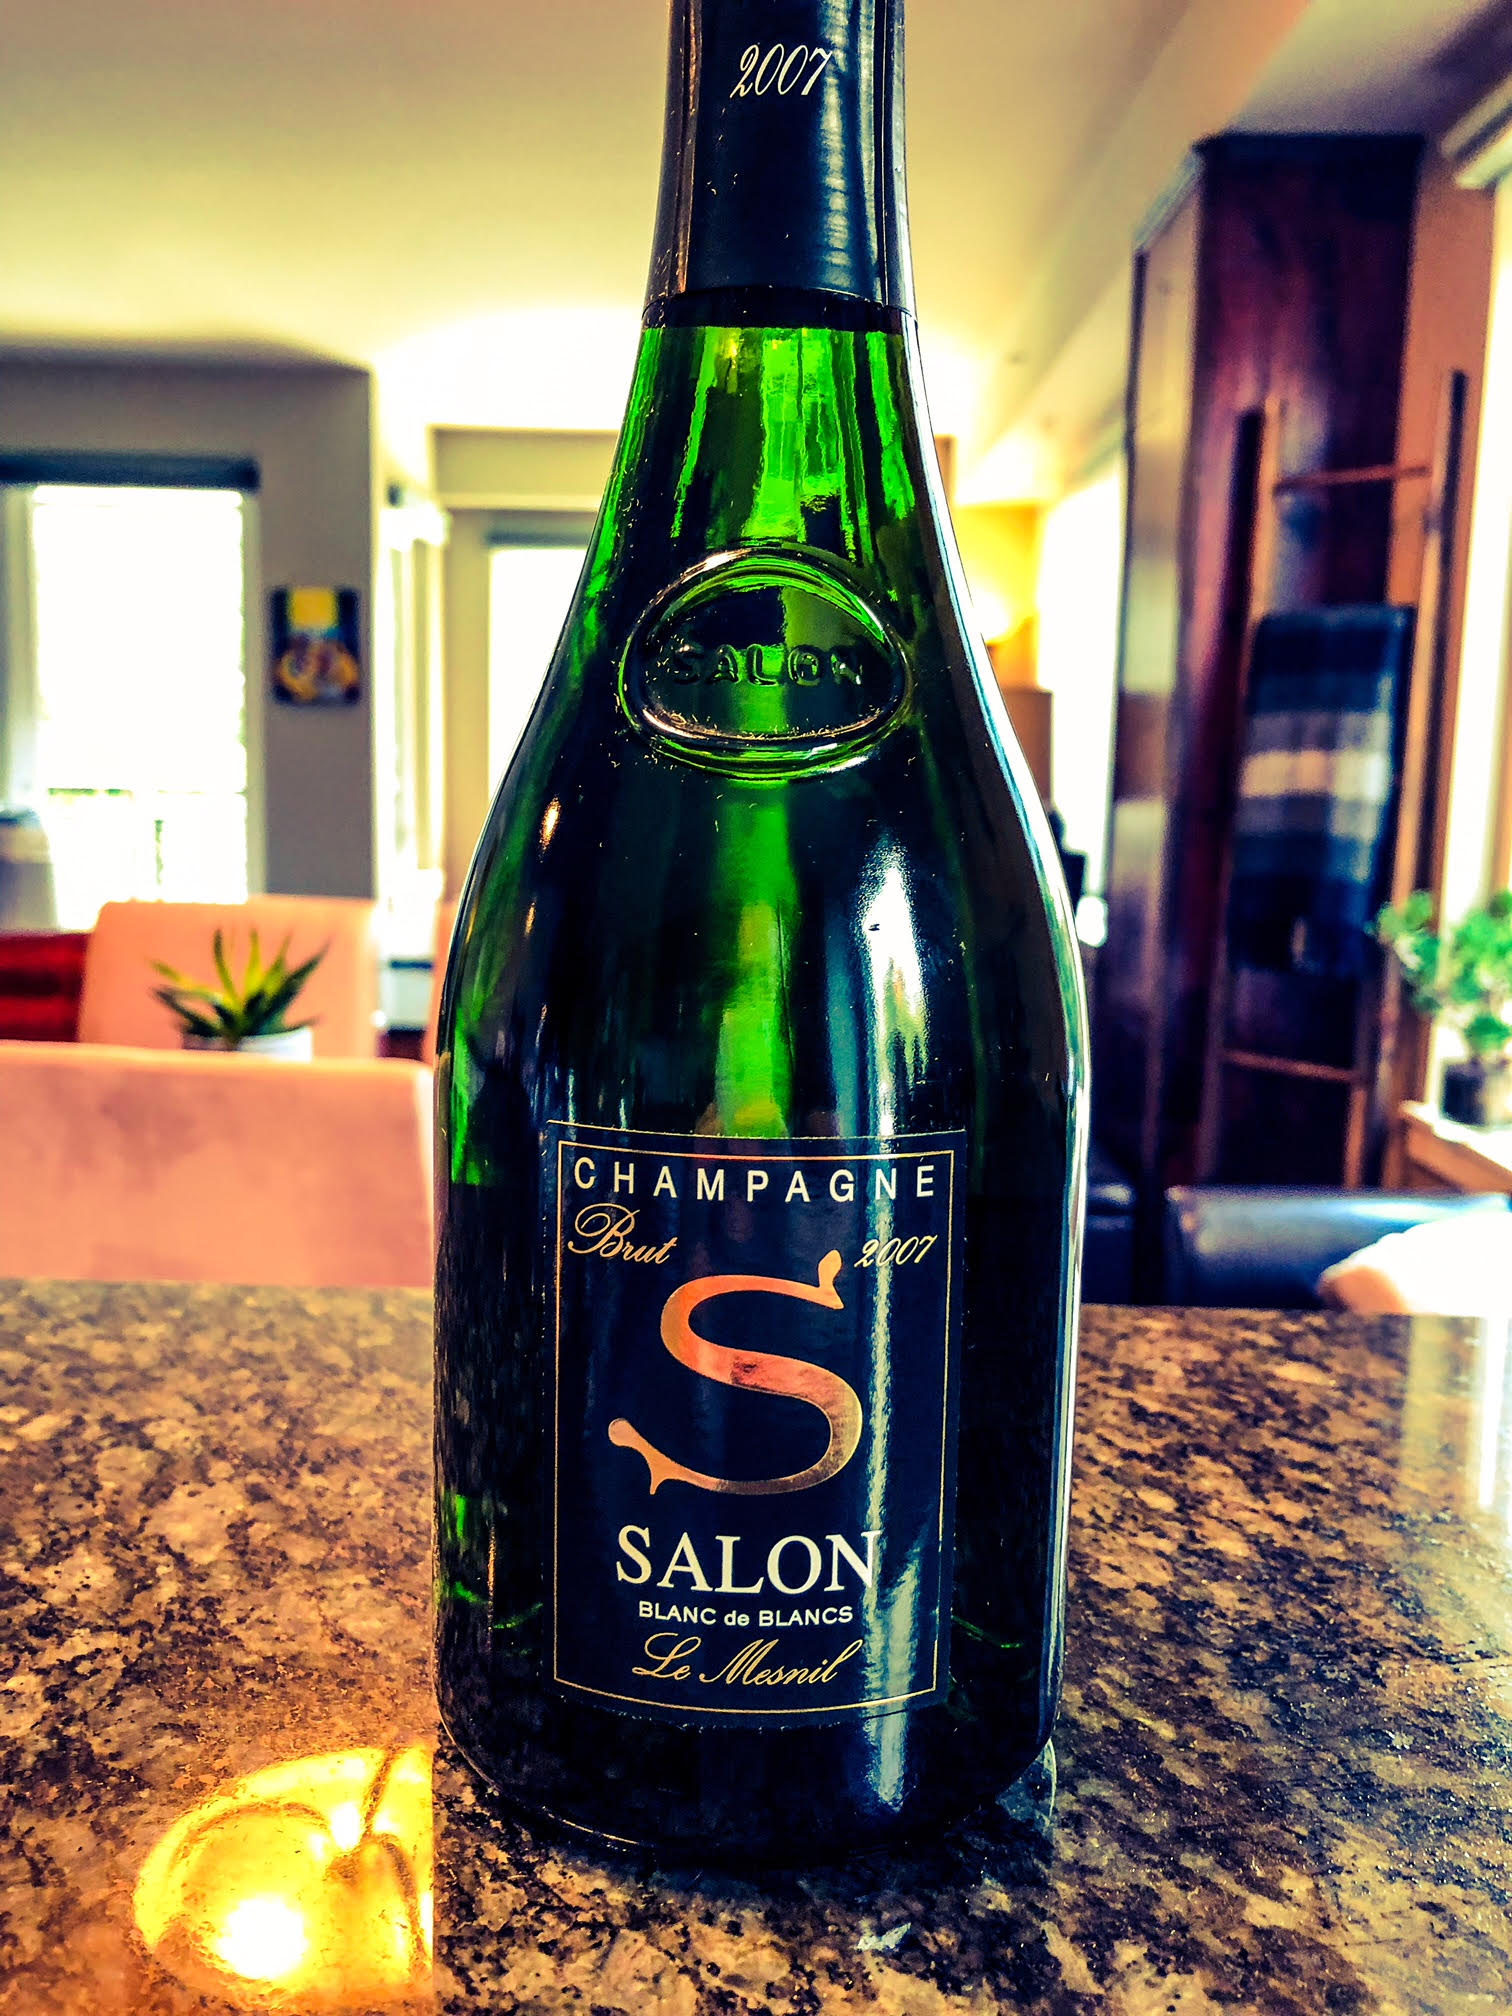 Champagne Salon and Delamotte — Washington Wine Blog